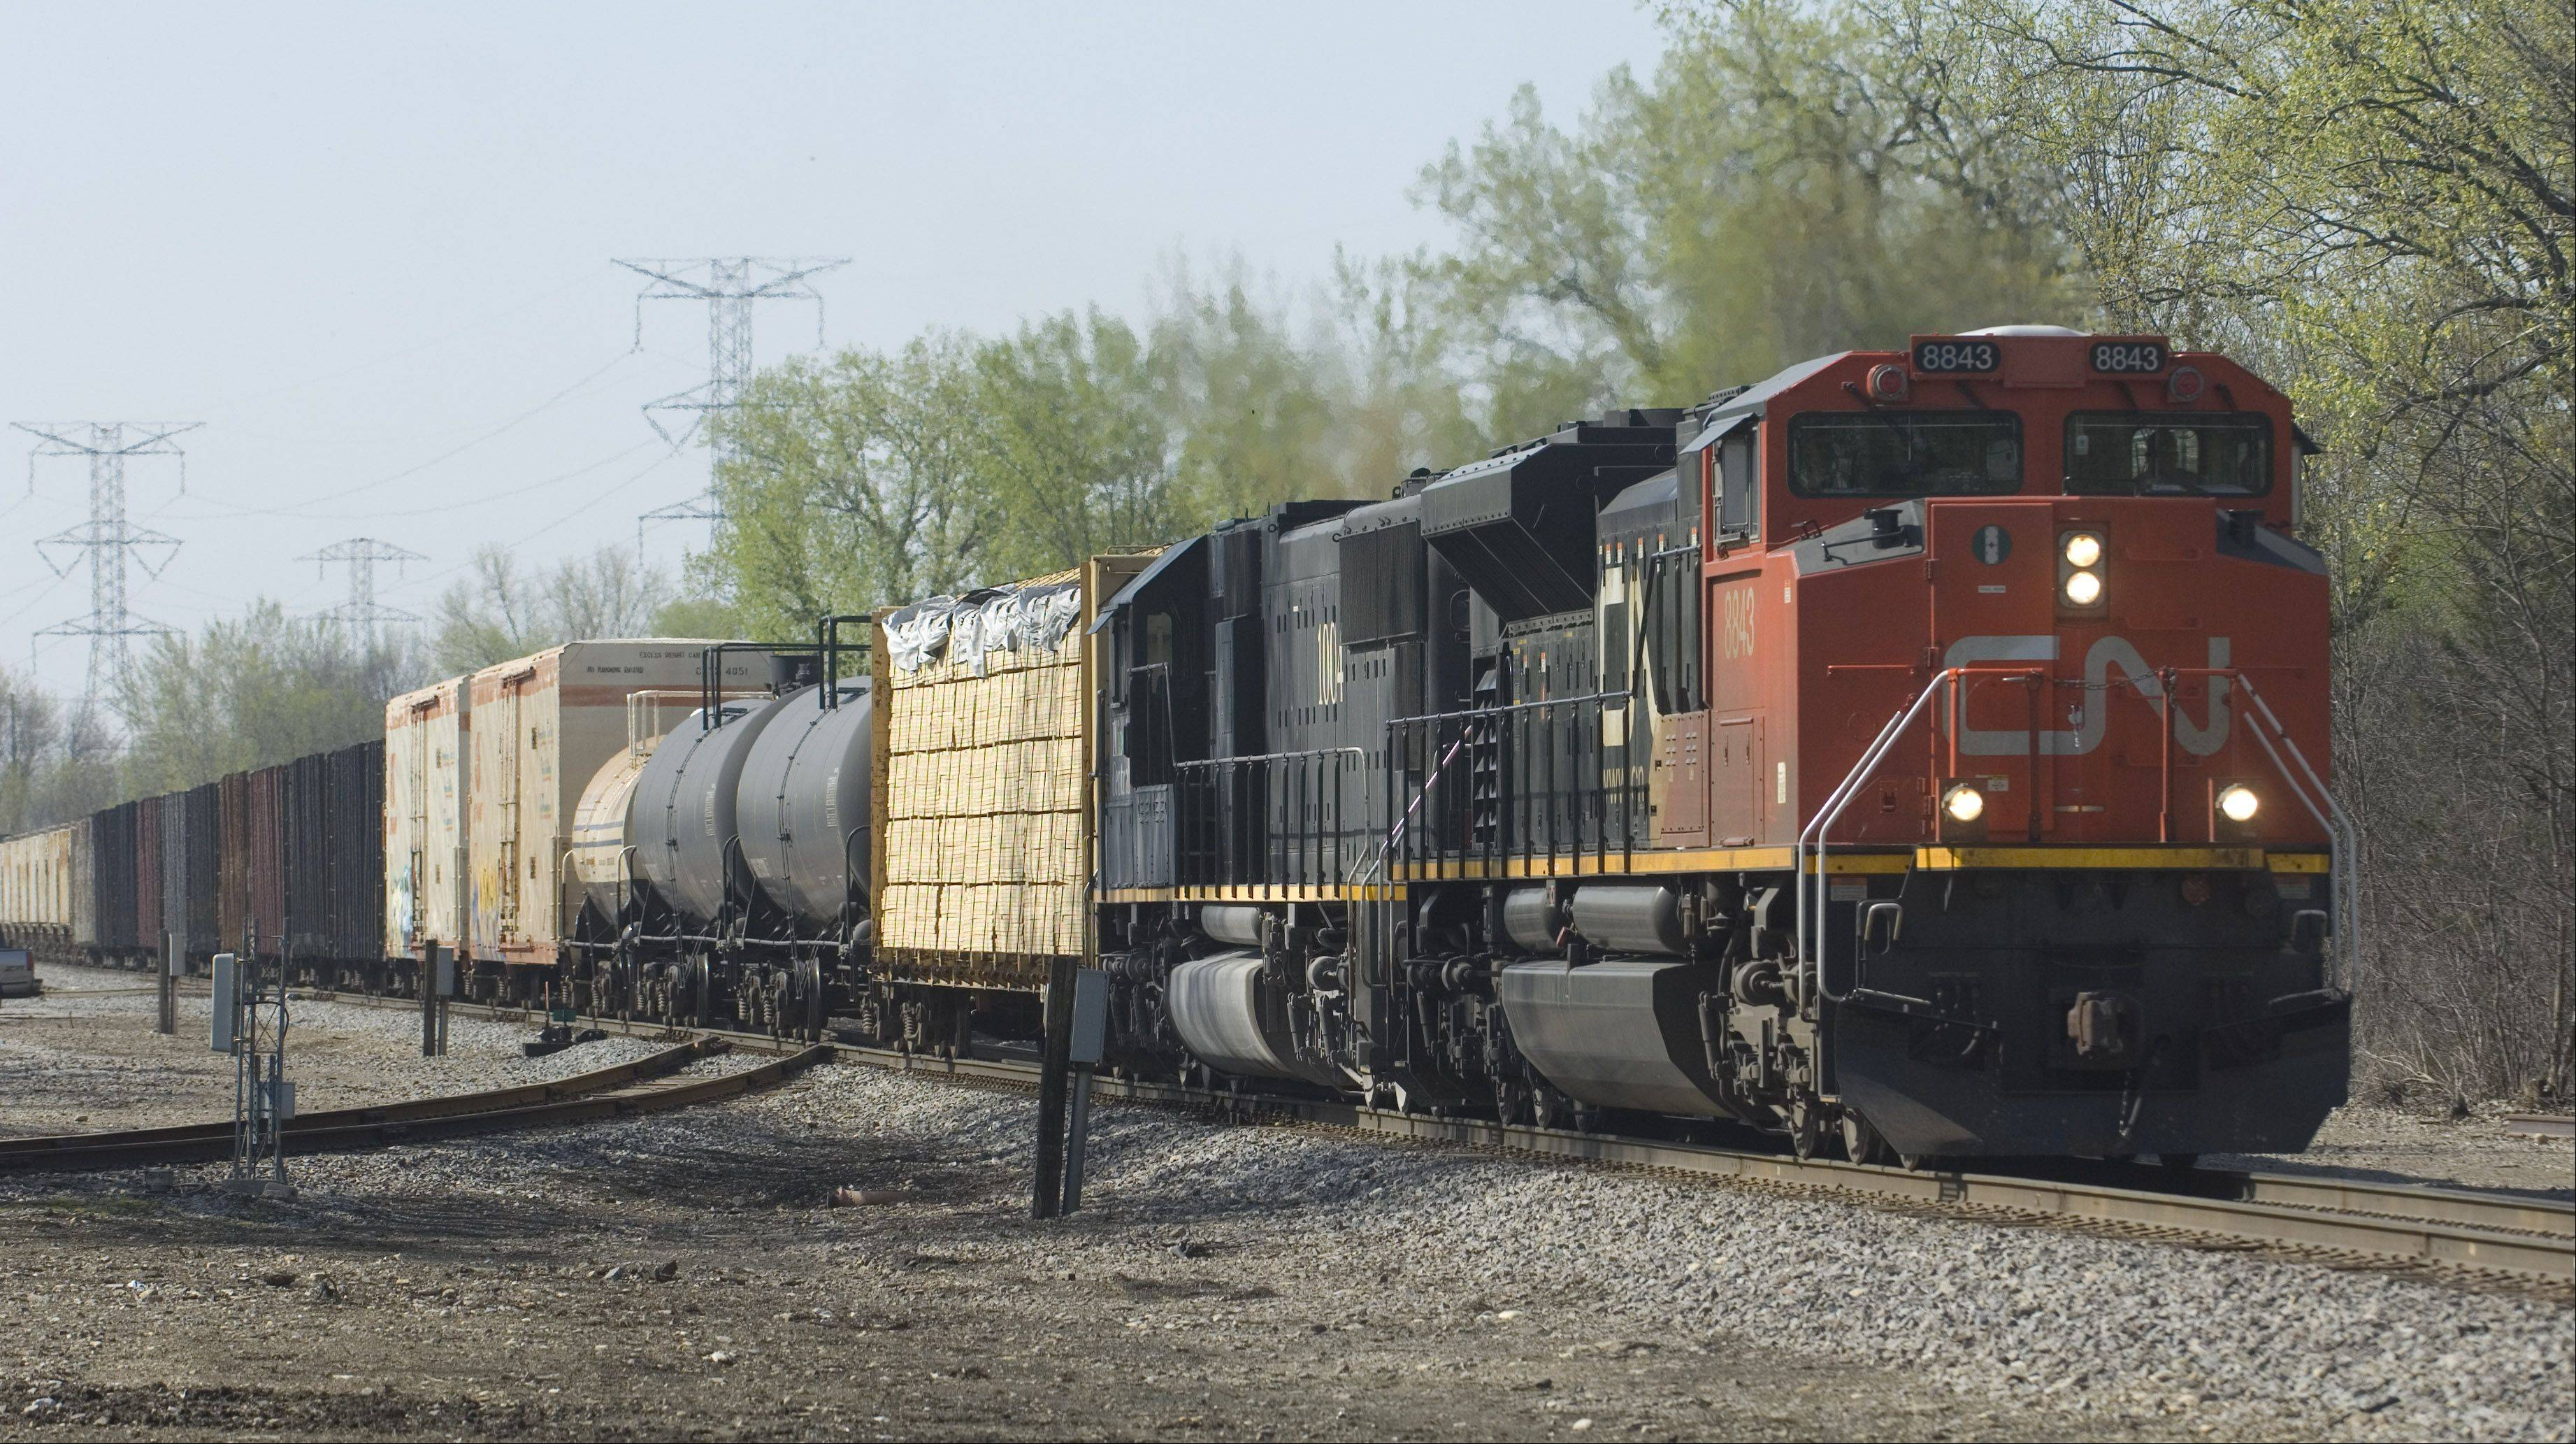 One reader says railfans seeking to get close-ups of freight trains can face citations from authorities because they're mistaken for suspicious characters.